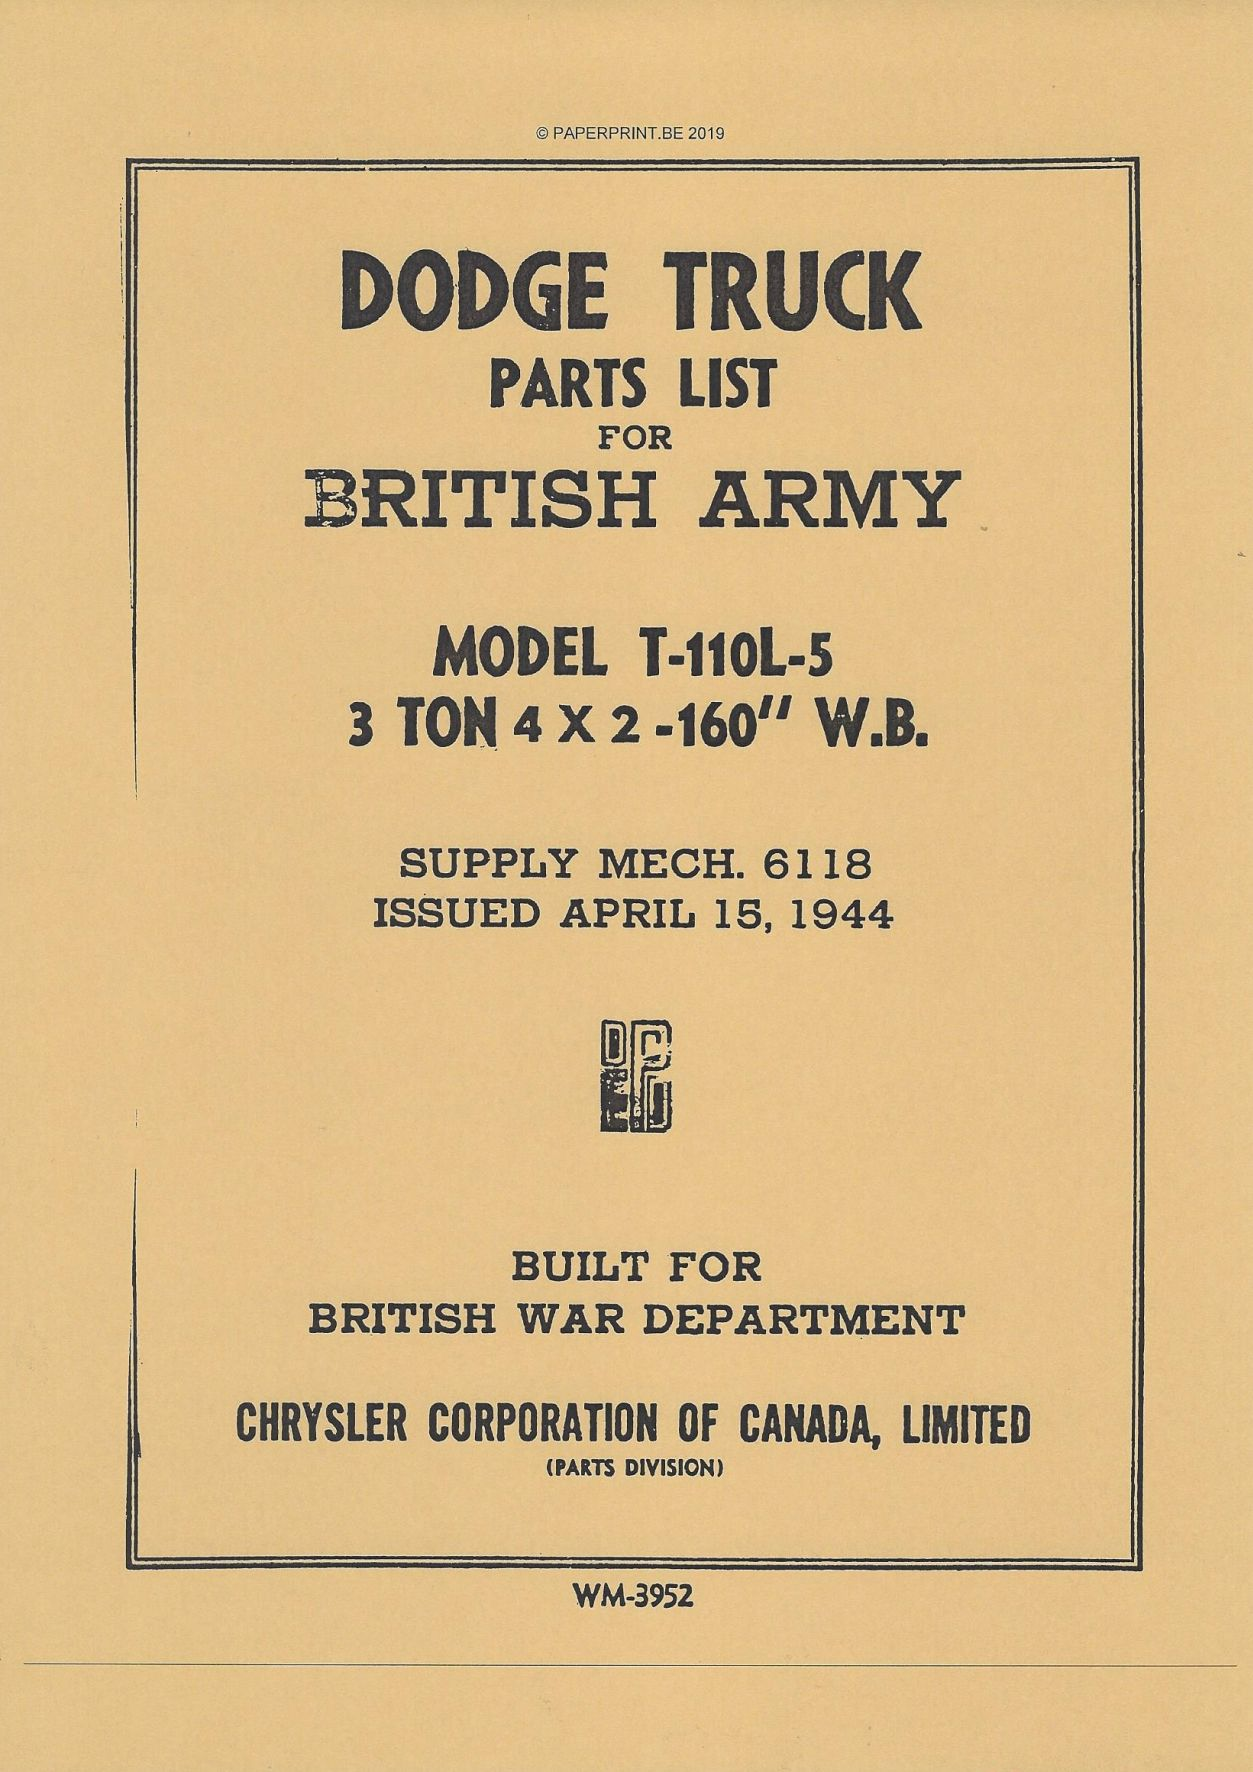 DODGE 3-TON 4 x 2 MODEL T-110L-5 PARTS LIST